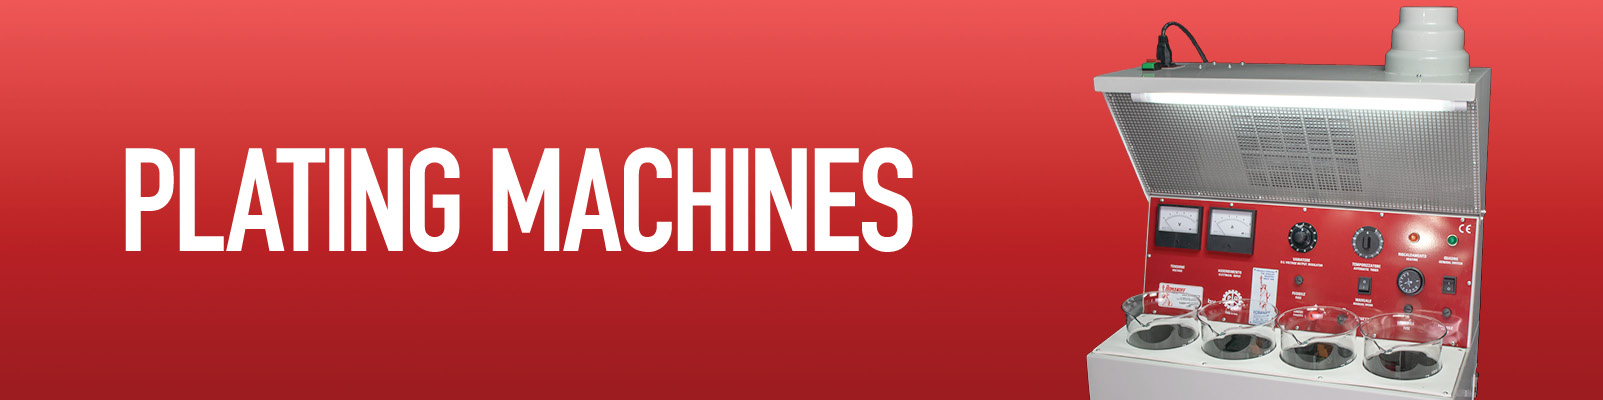 Plating Machines